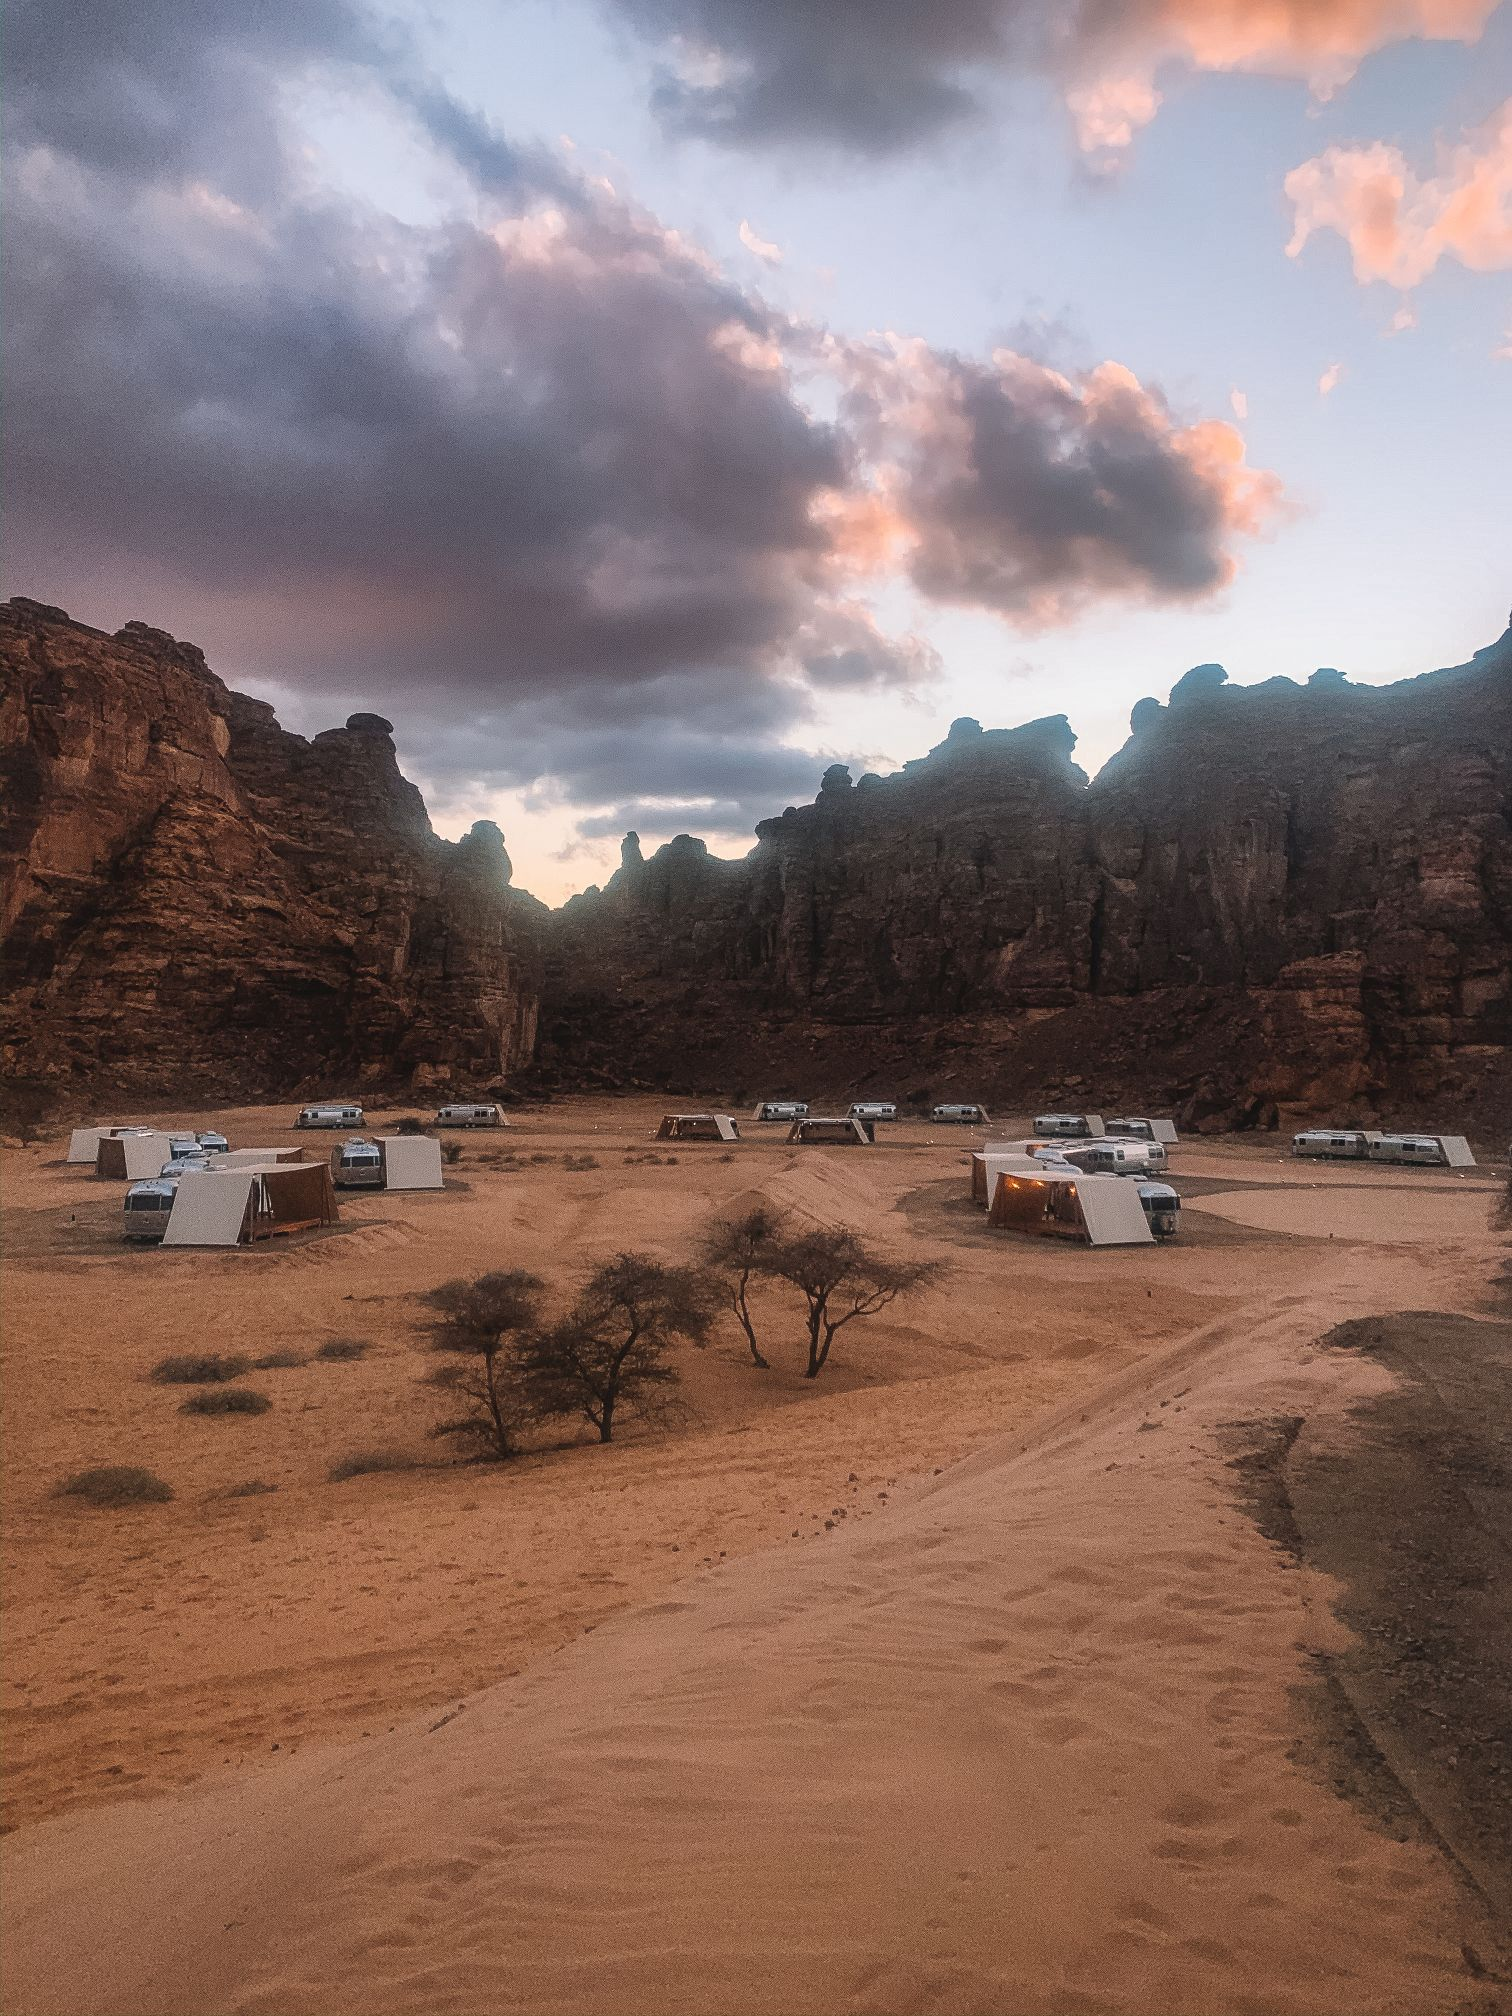 RV Camp hotel in Al-Ula Saudi Arabia